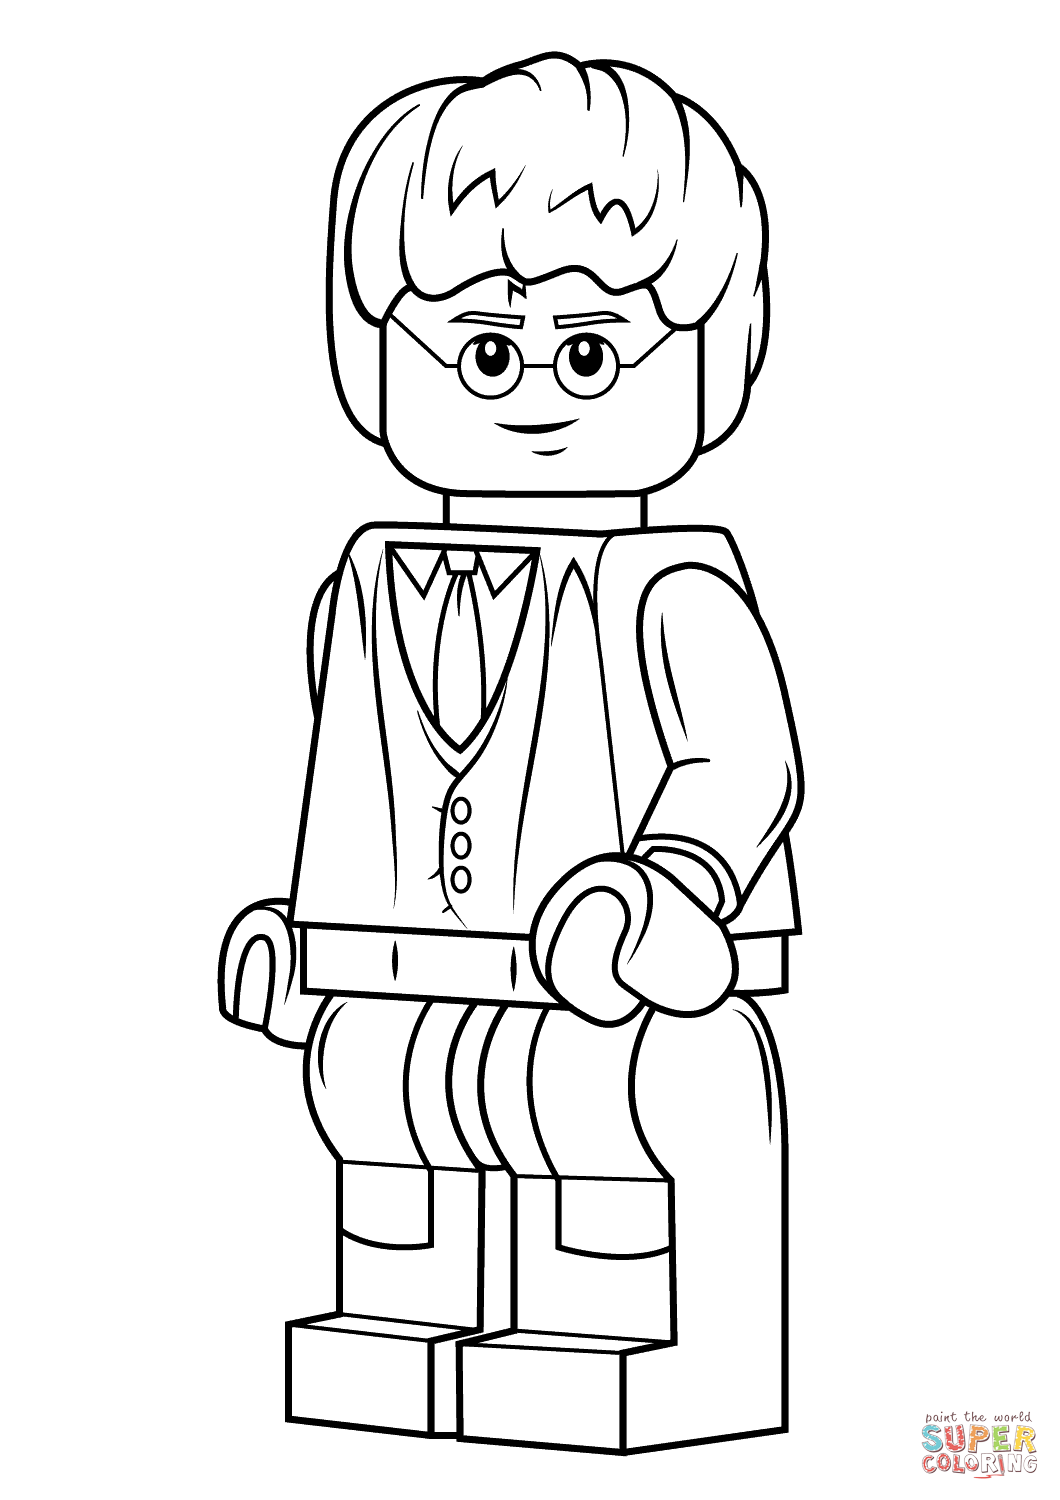 Click the lego harry potter coloring pages to view printable version or color it online compatible with ipad and android tablets